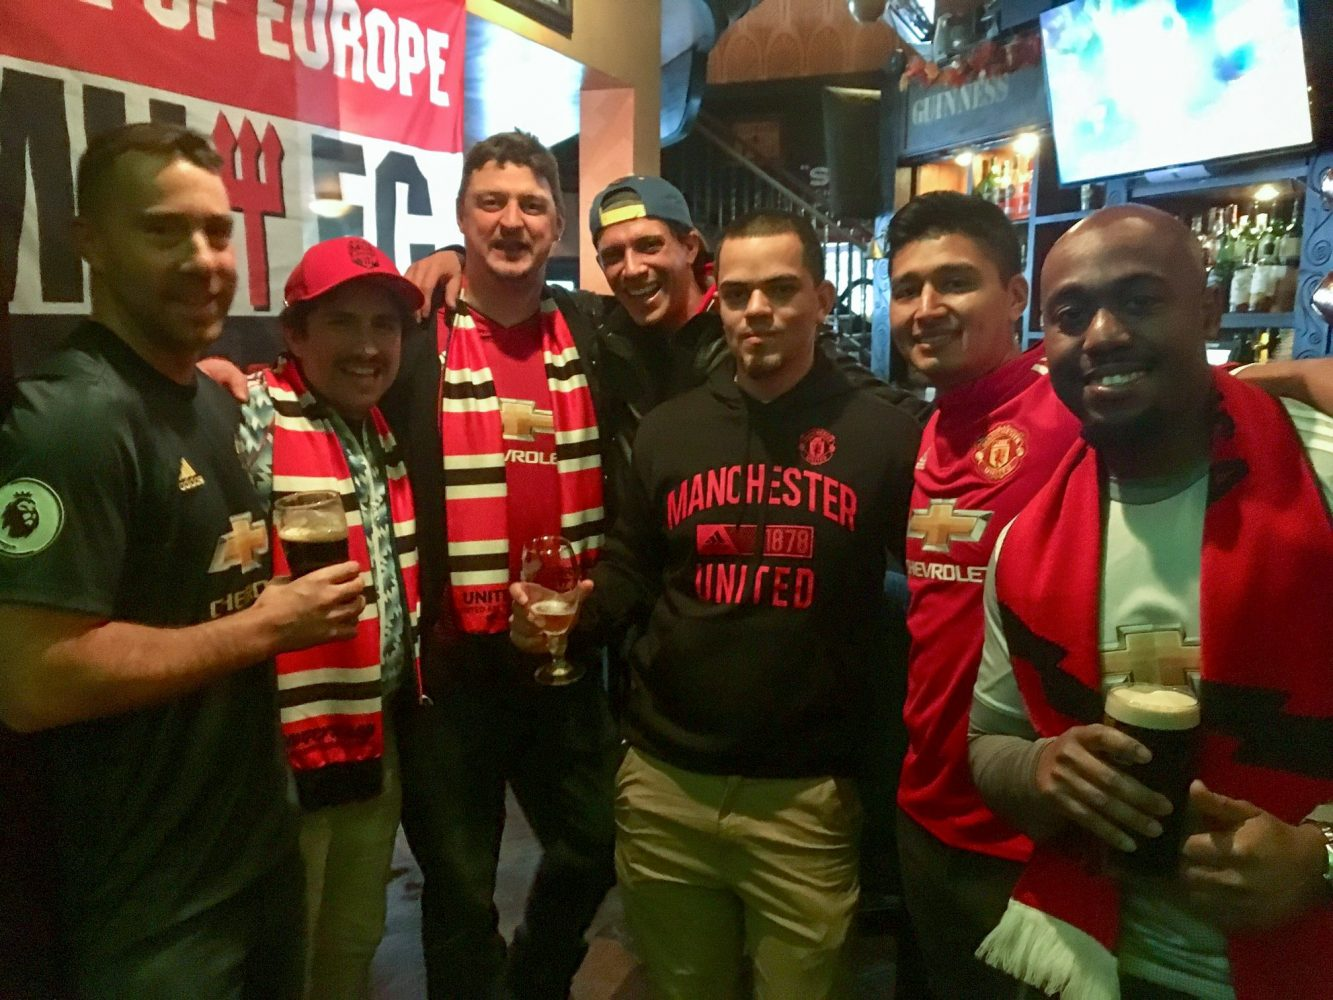 Manchester United supporter group celebrating in bar